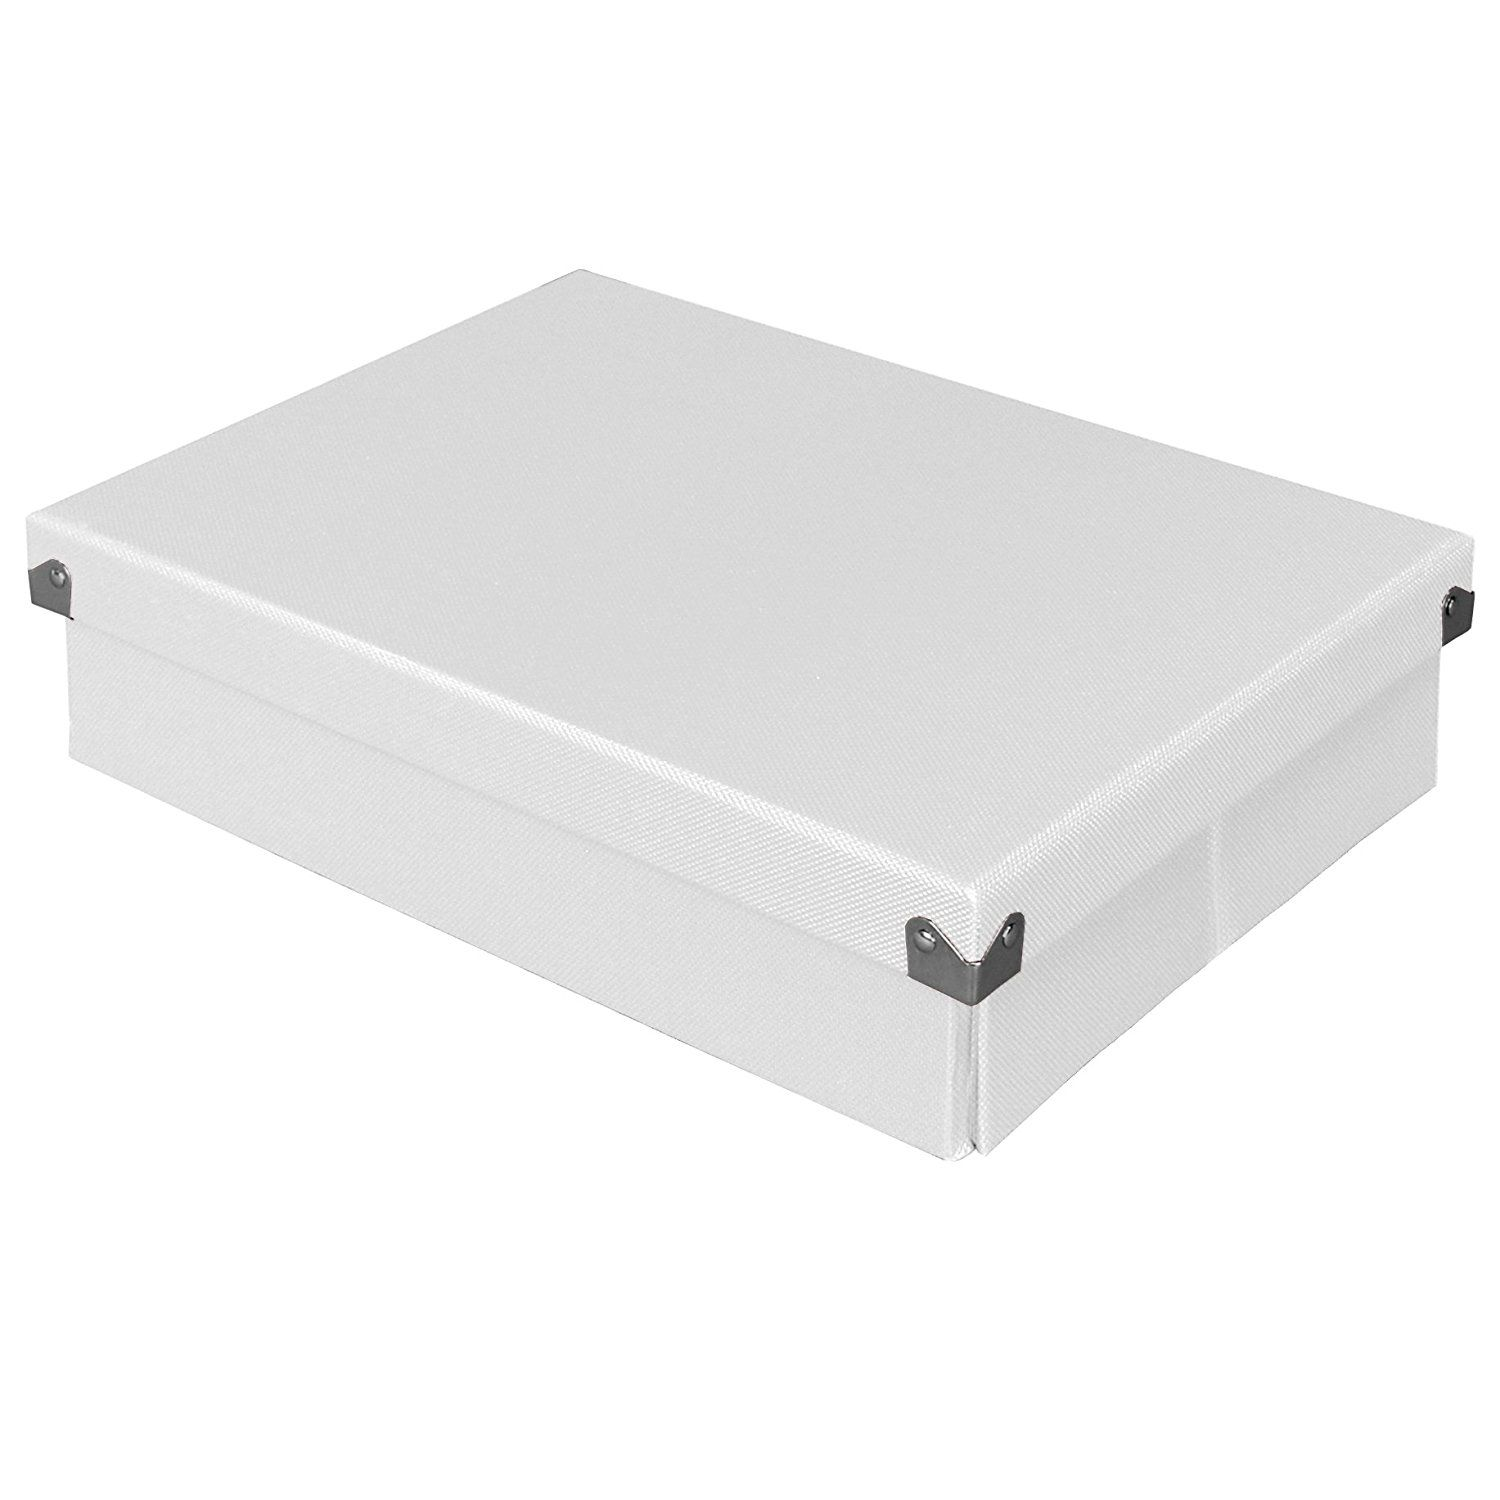 Decorative Document Storage Boxes Amazon Pop N' Store Decorative Storage Box With Lid